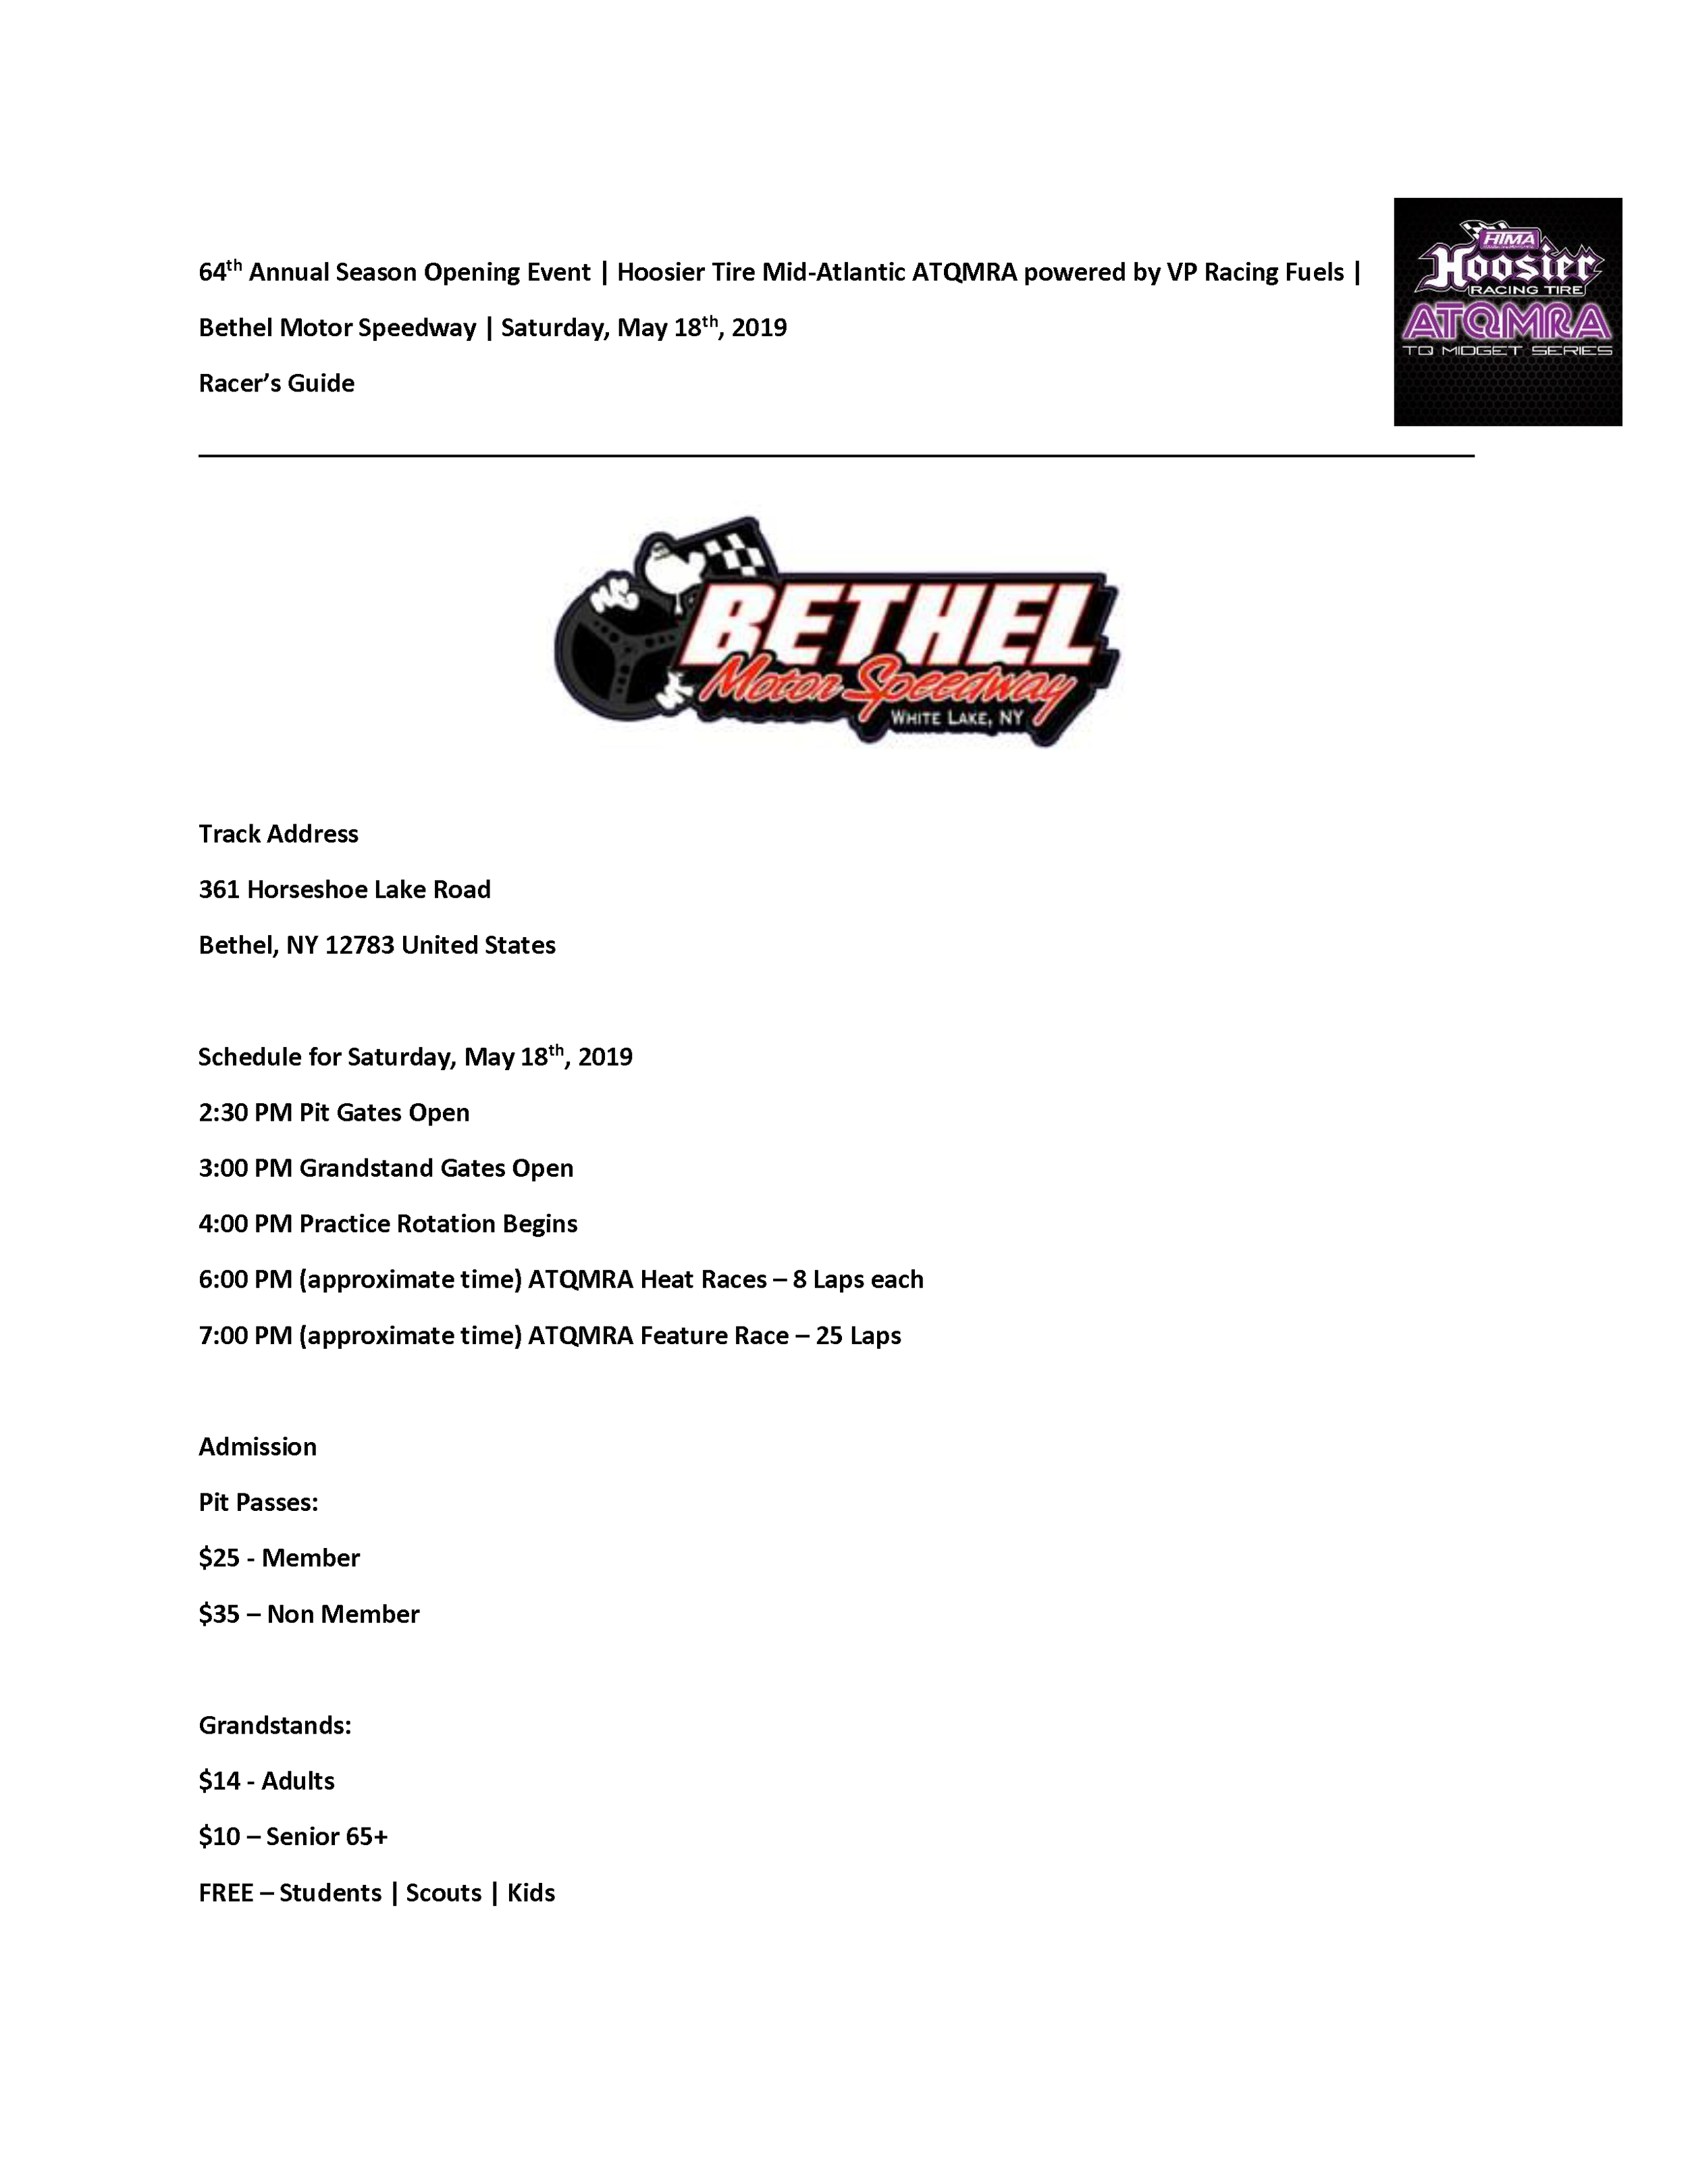 2019 Bethel 1 Racer's Guide.png